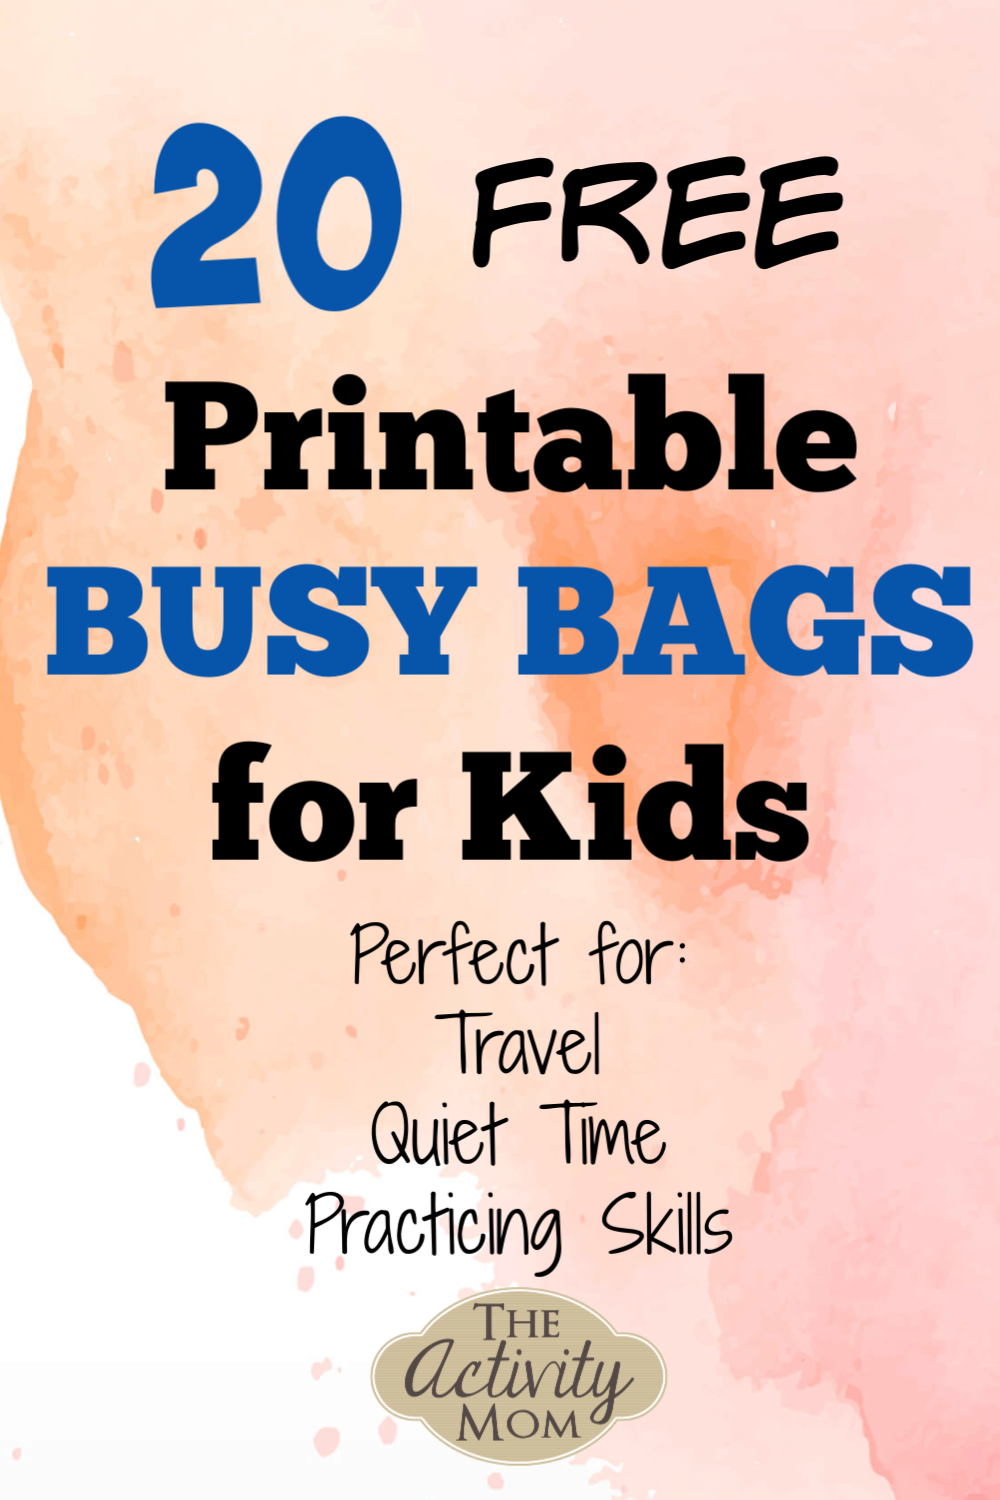 Free Printable Busy Bags for Kids